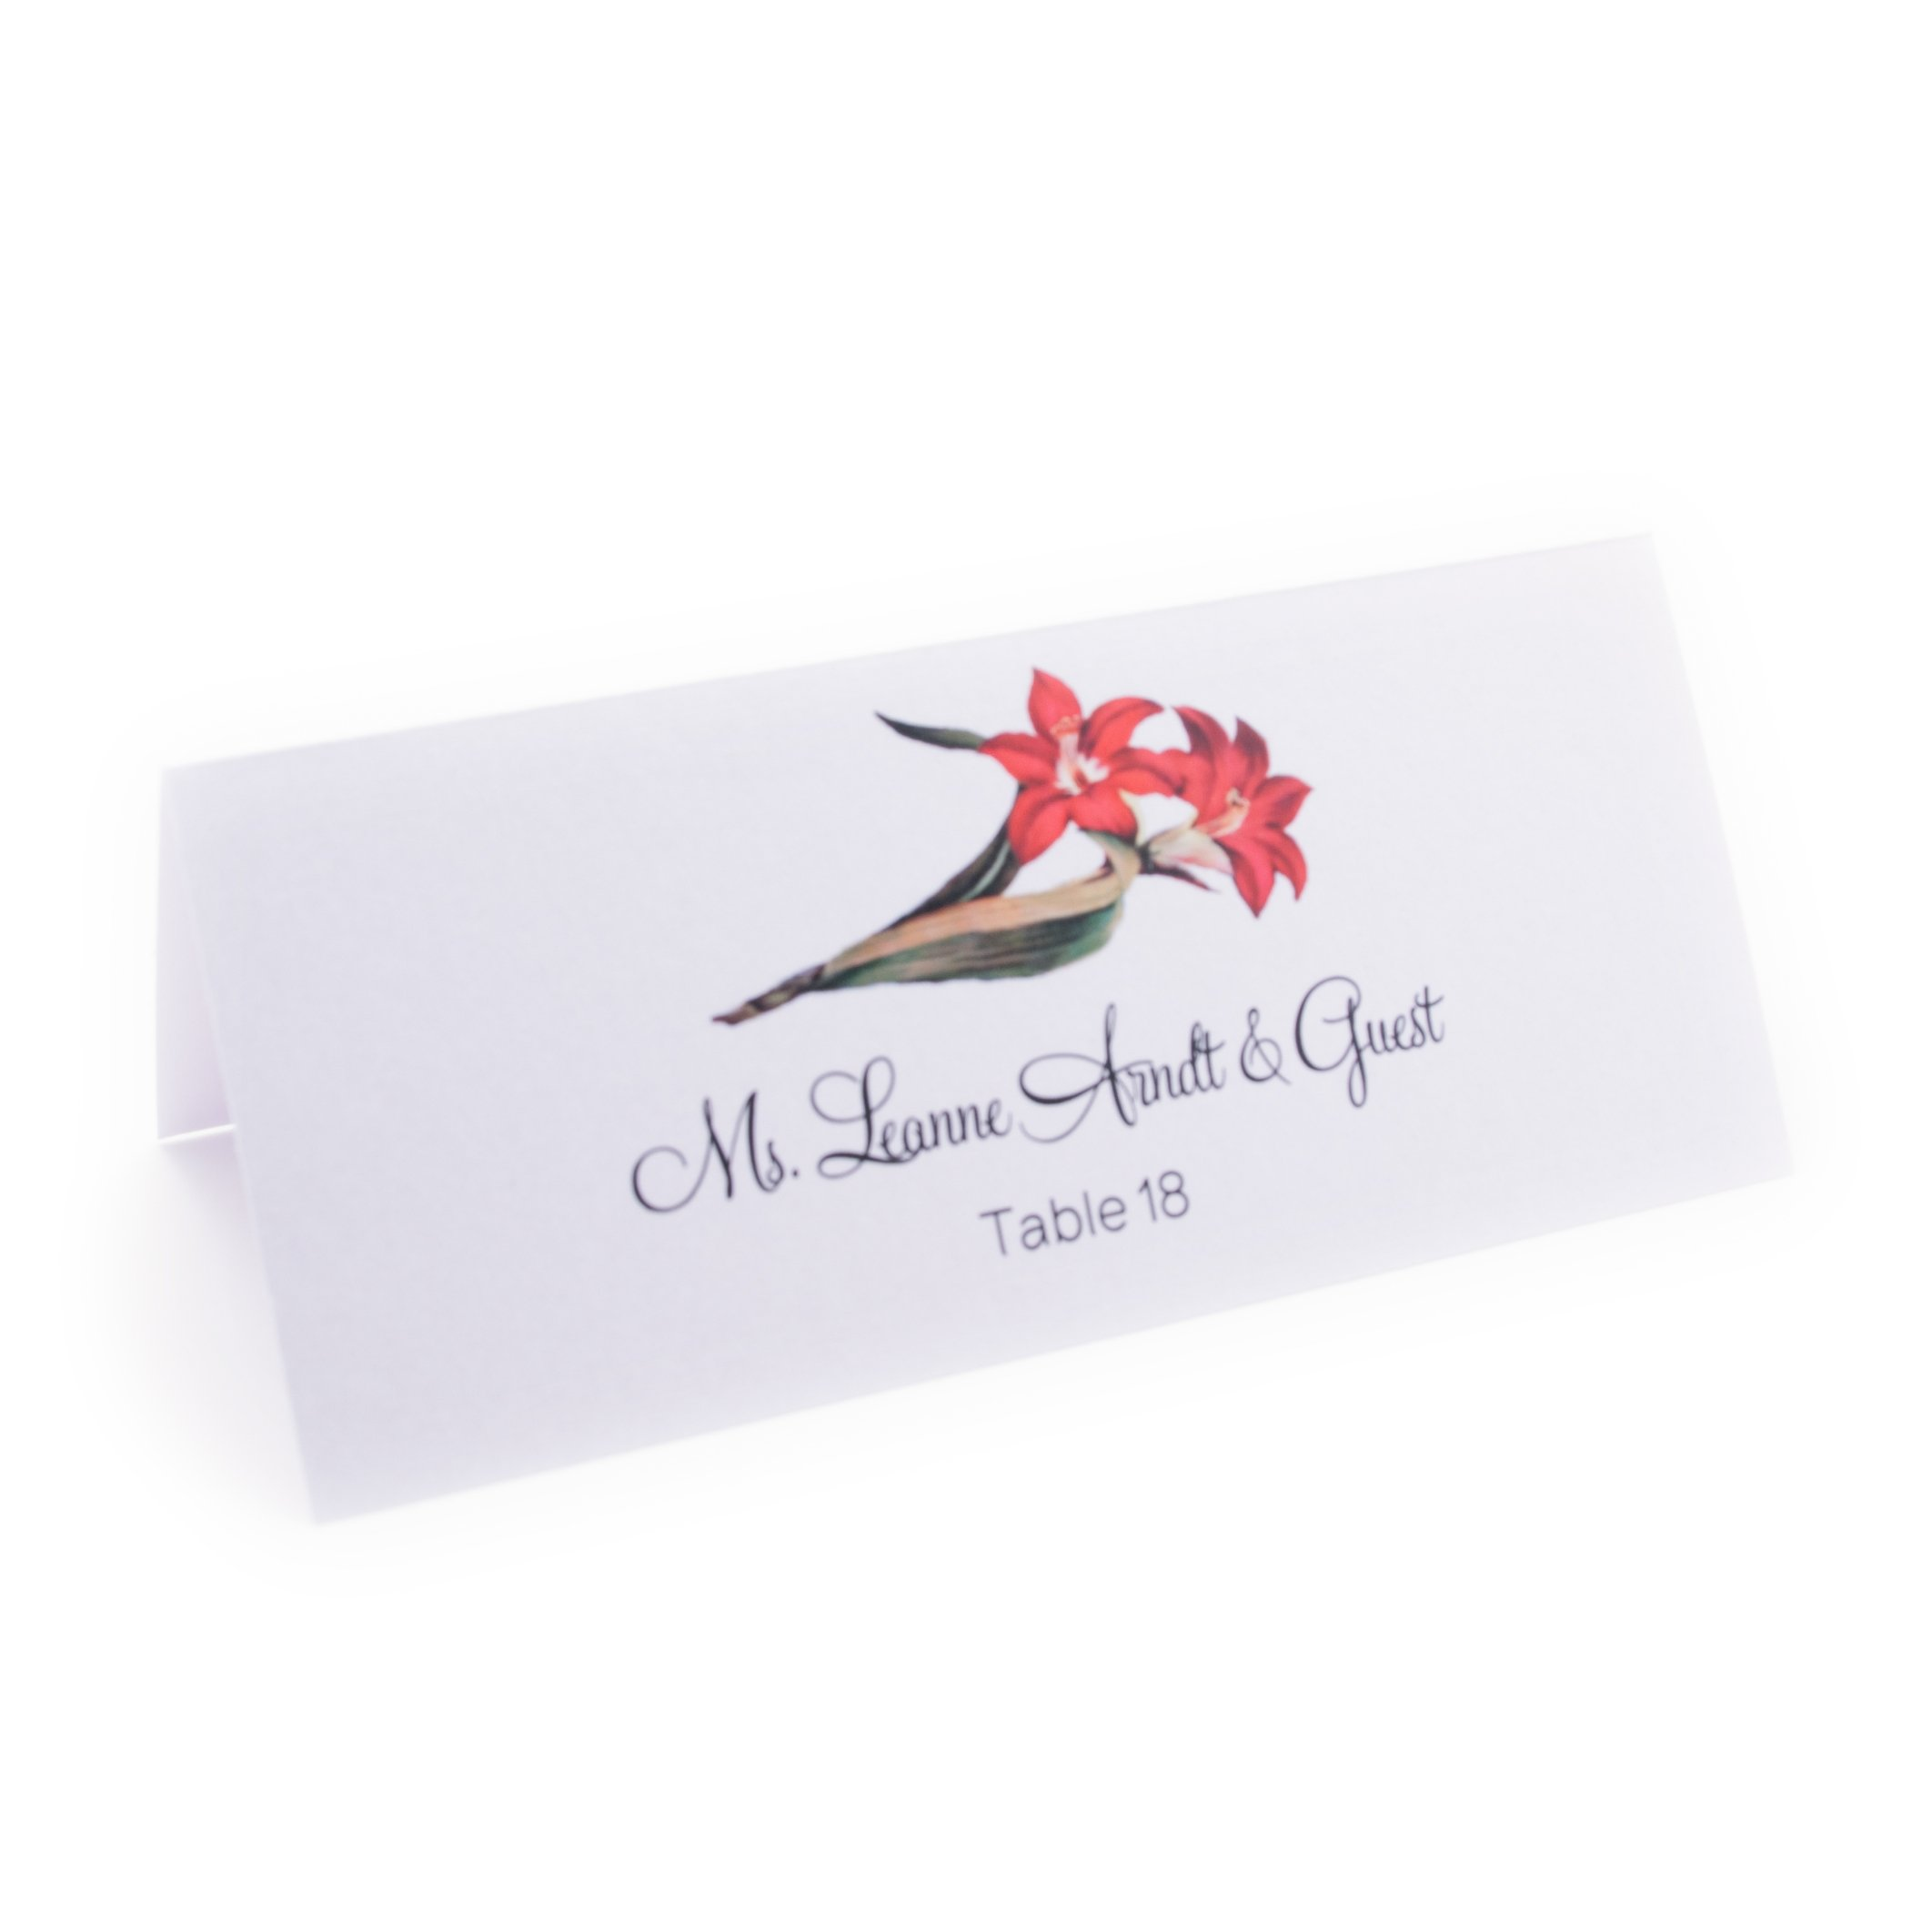 Flower Place Cards, Assorted Designs, Pearl White, Set of 375 by Documents and Designs